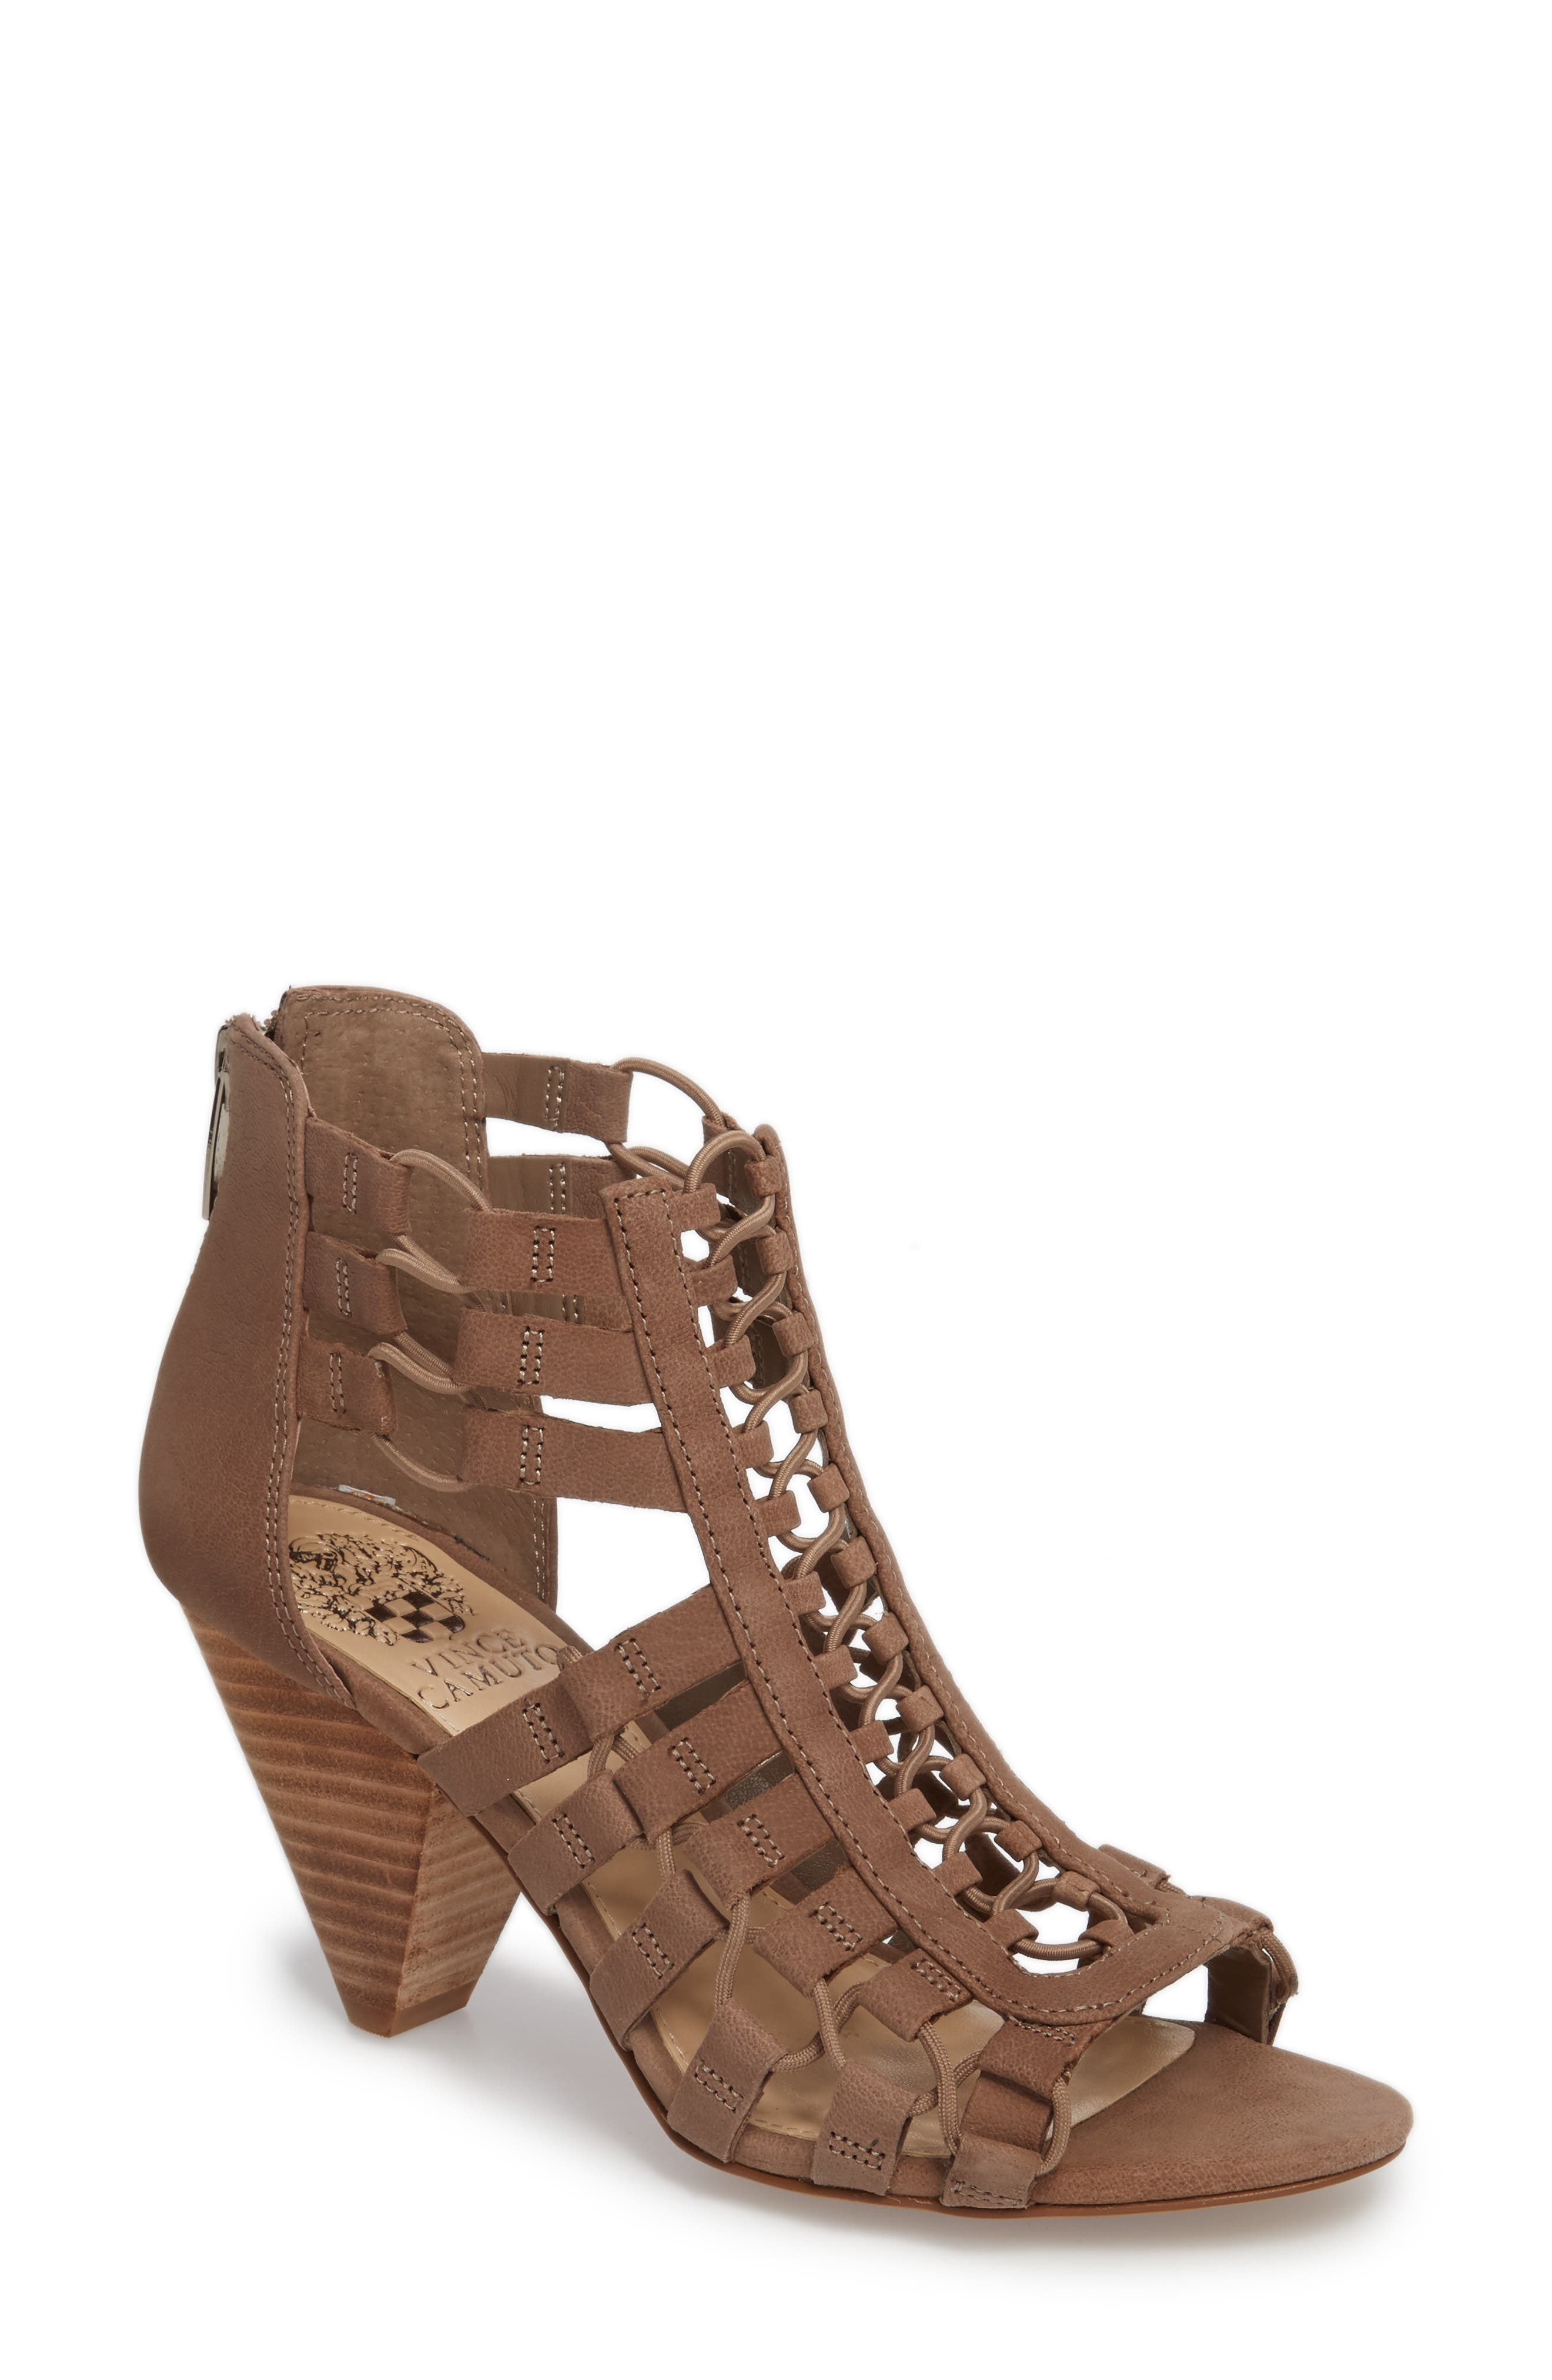 Sandals for Women On Sale, Red, suede, 2017, 3.5 4.5 5.5 7.5 Jeffrey Campbell